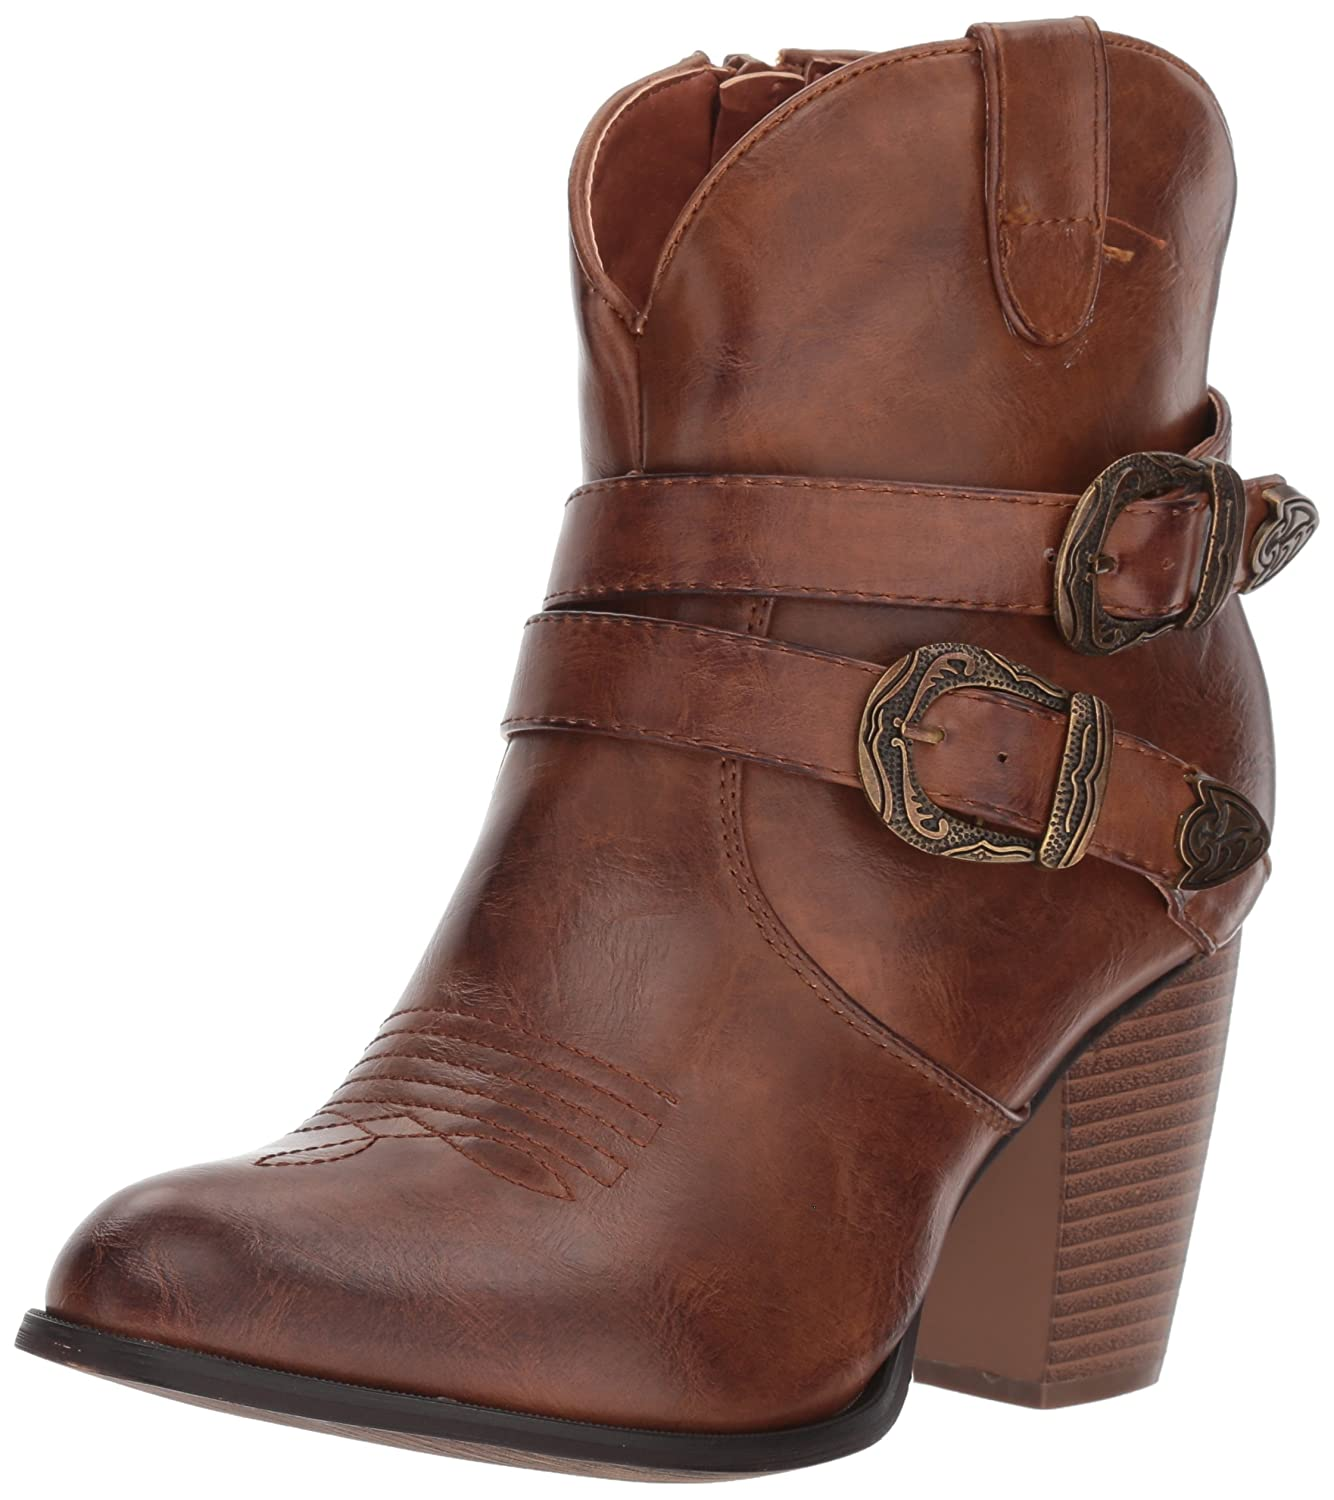 Roper Women's Maybelle Fashion Boot B074D4BXXH 6.5 B(M) US|Brown